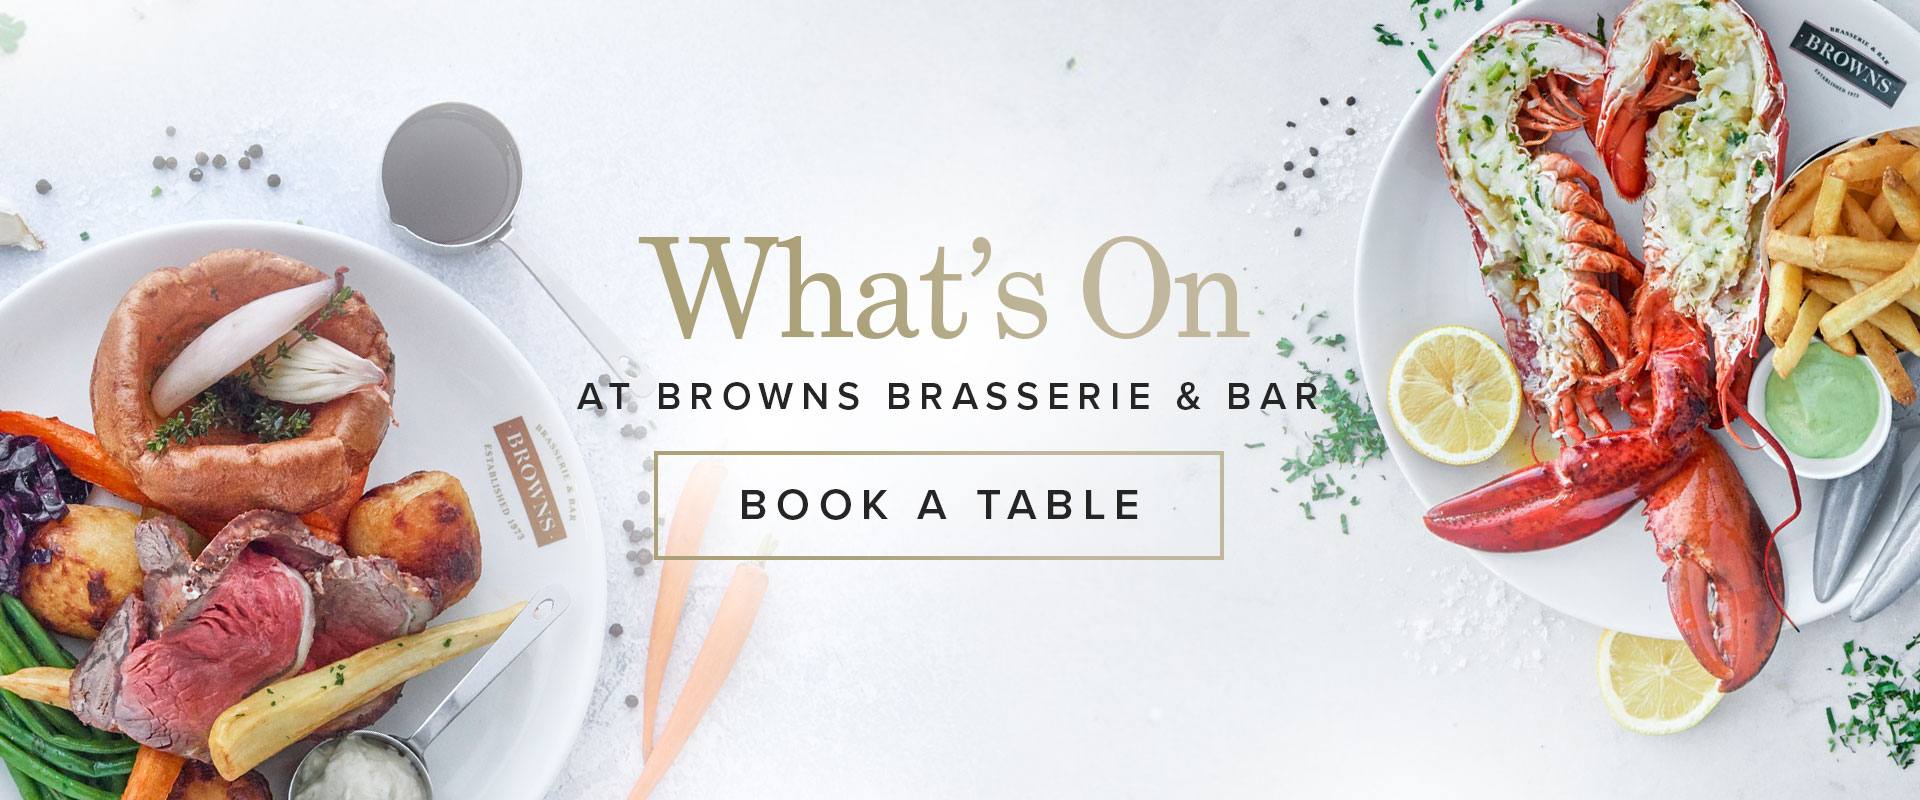 What's On at Browns